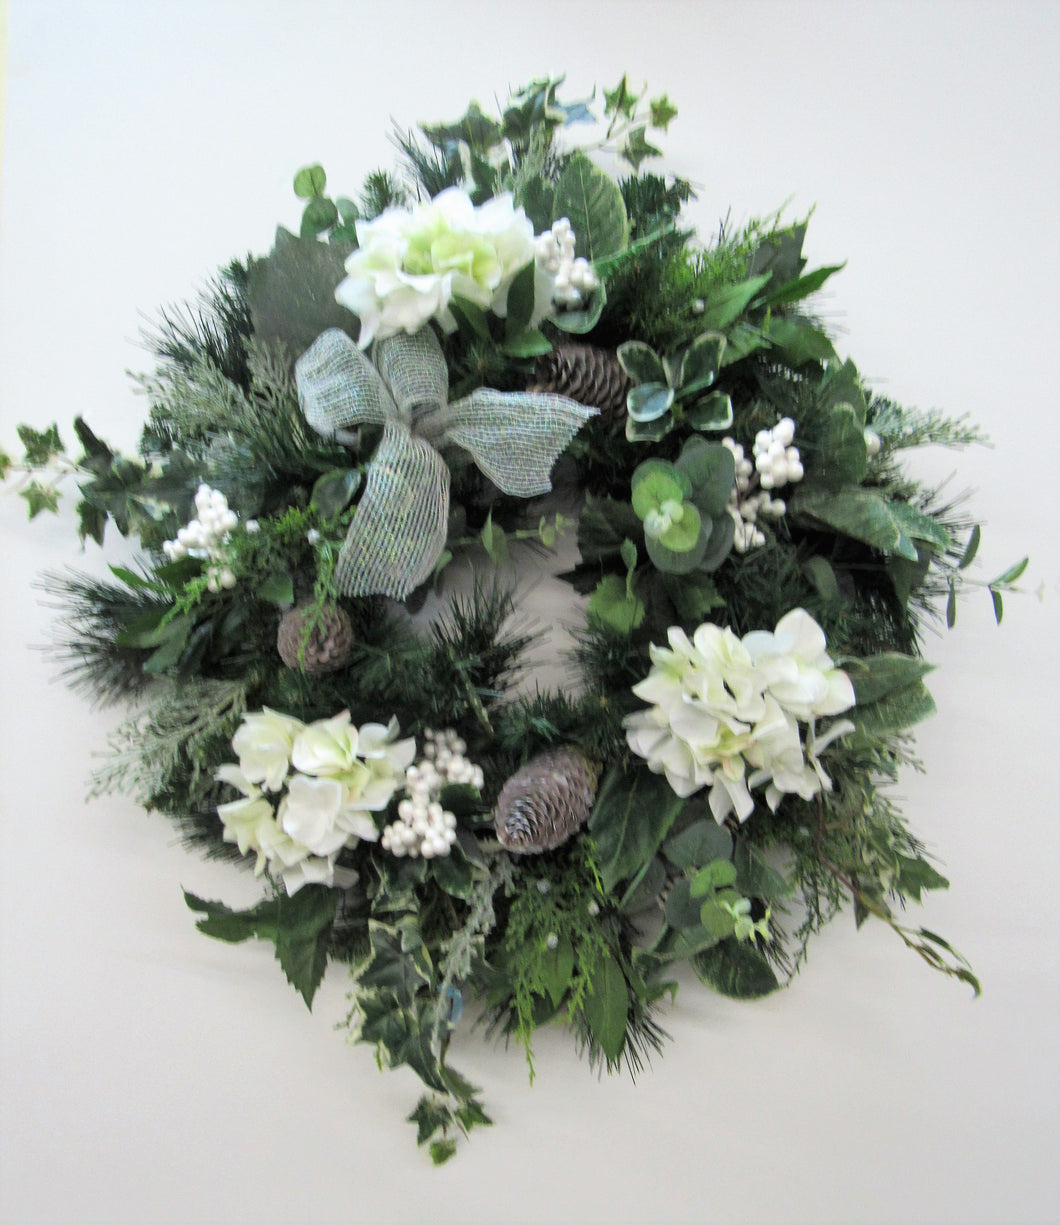 Gallery/Trans73 - April's Garden Wreath